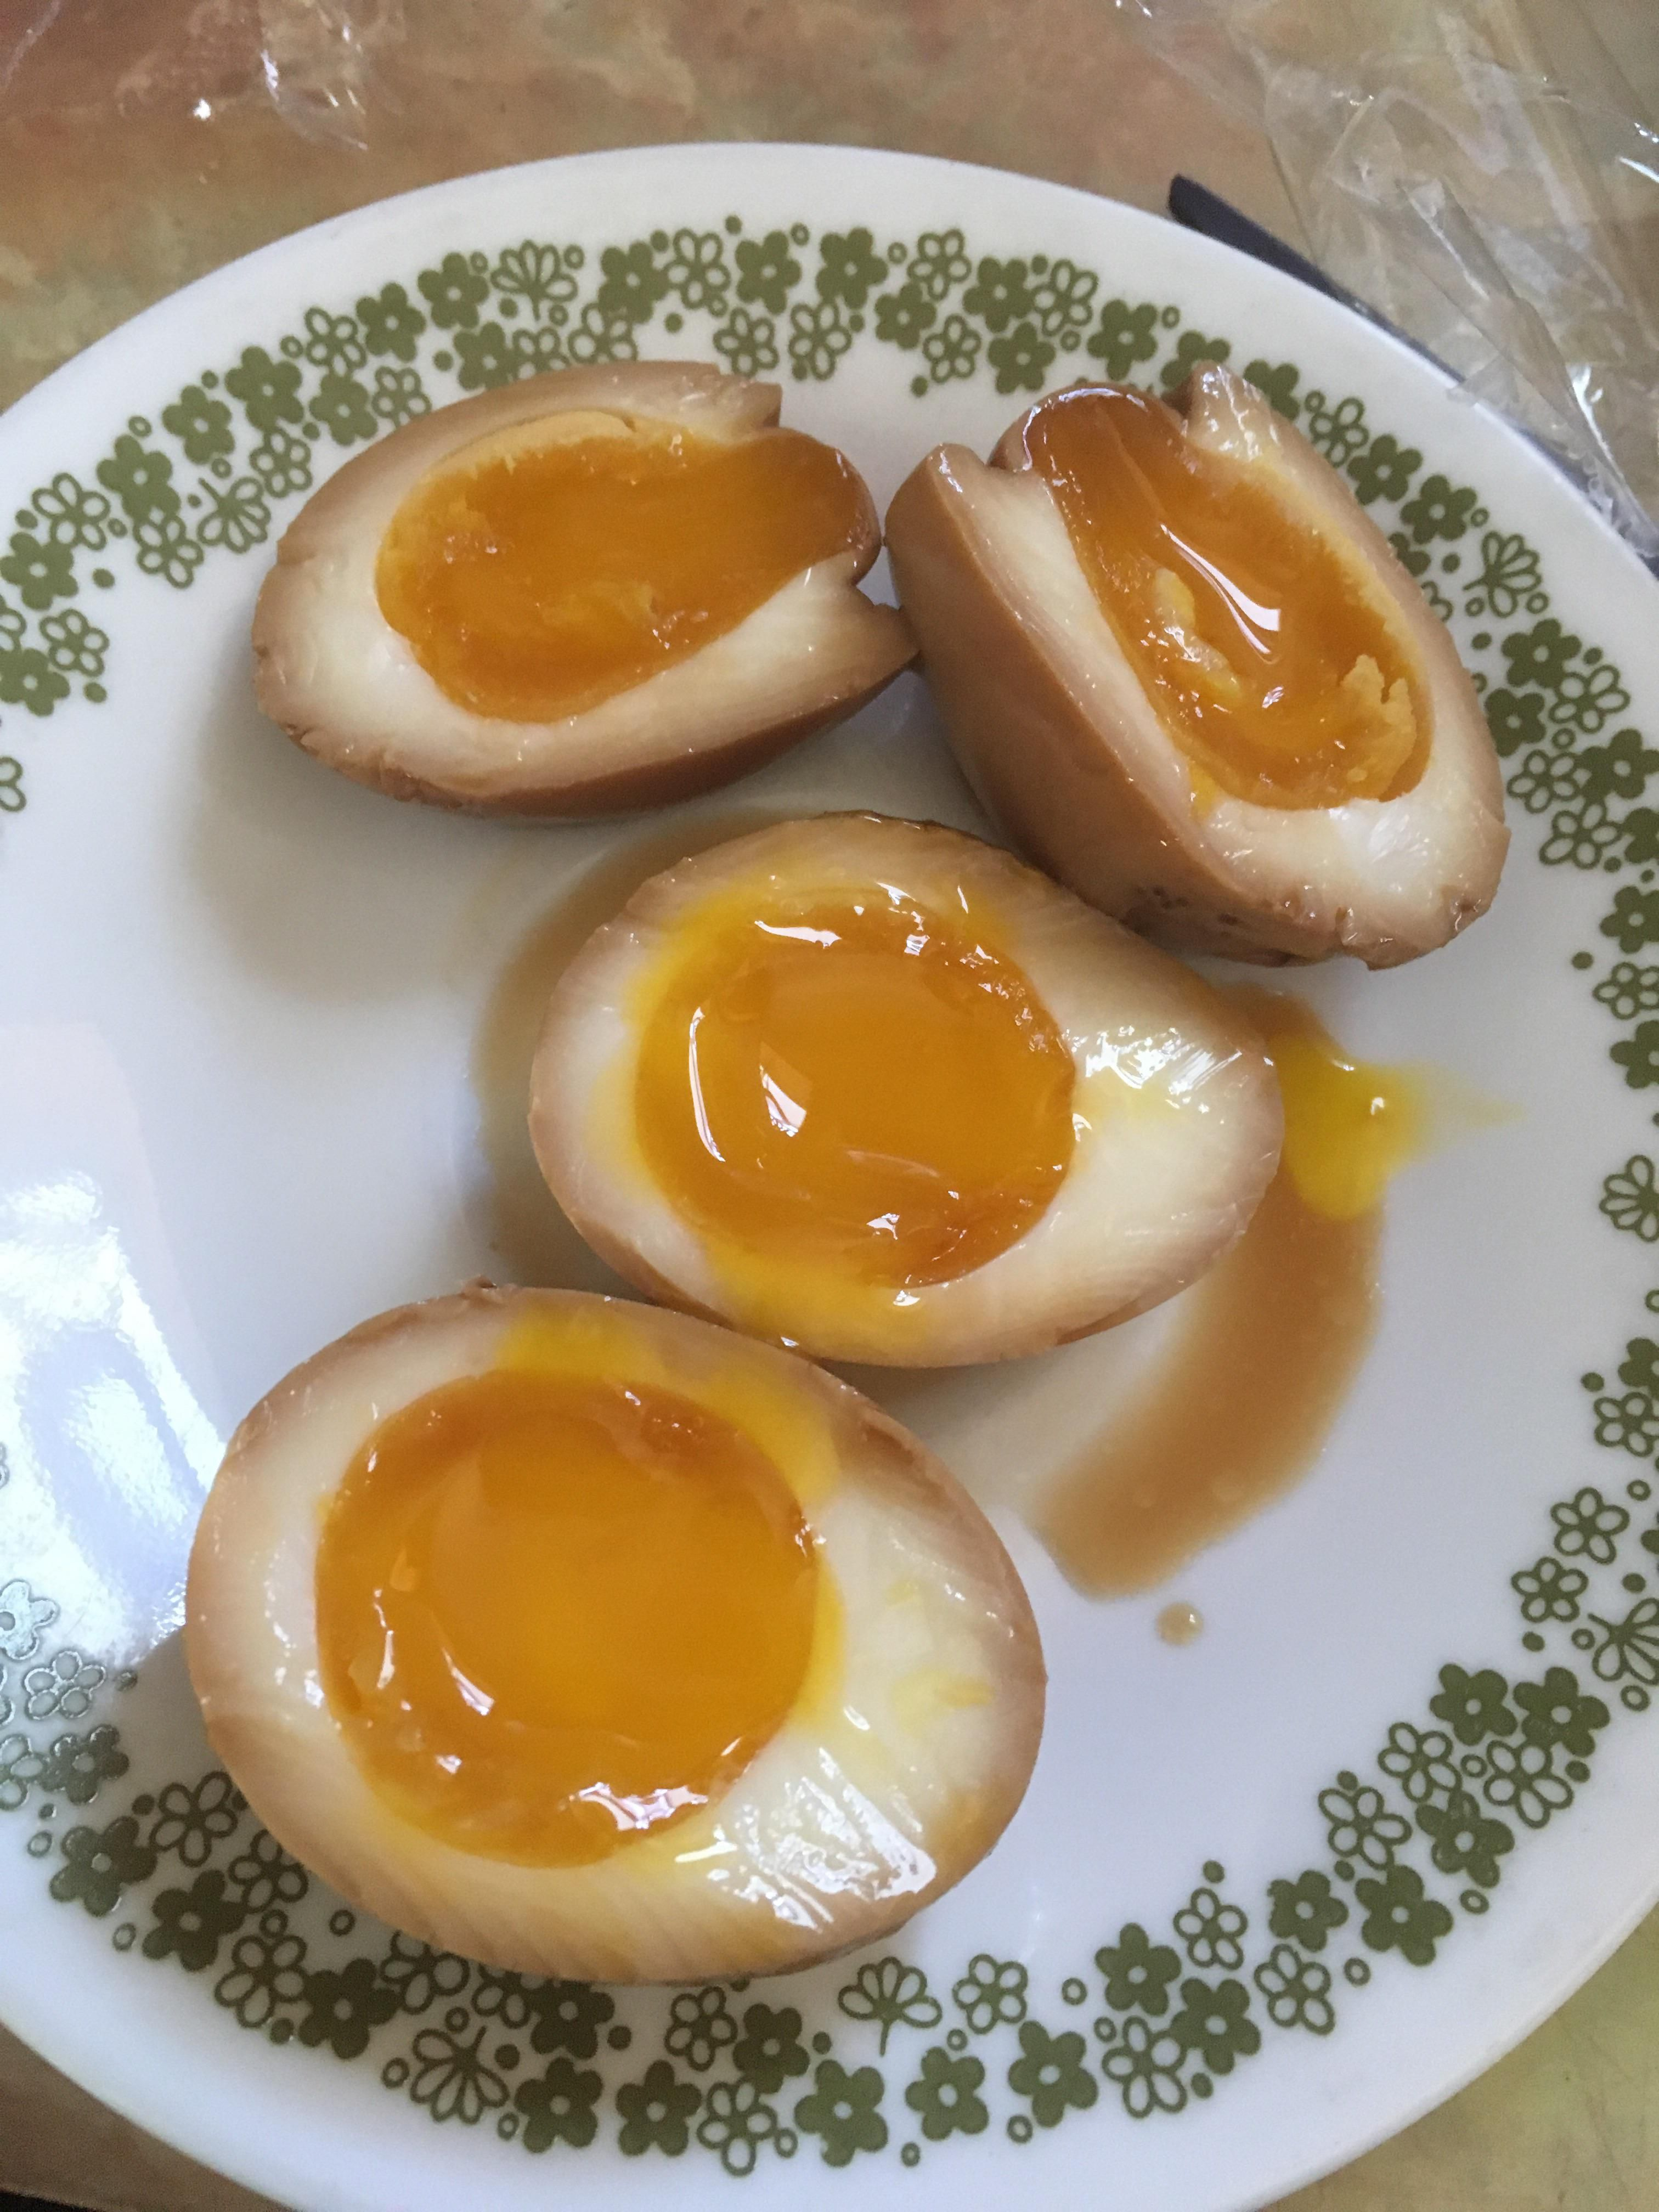 Soft boiled eggs marinated in soy sauce and sugar overnight